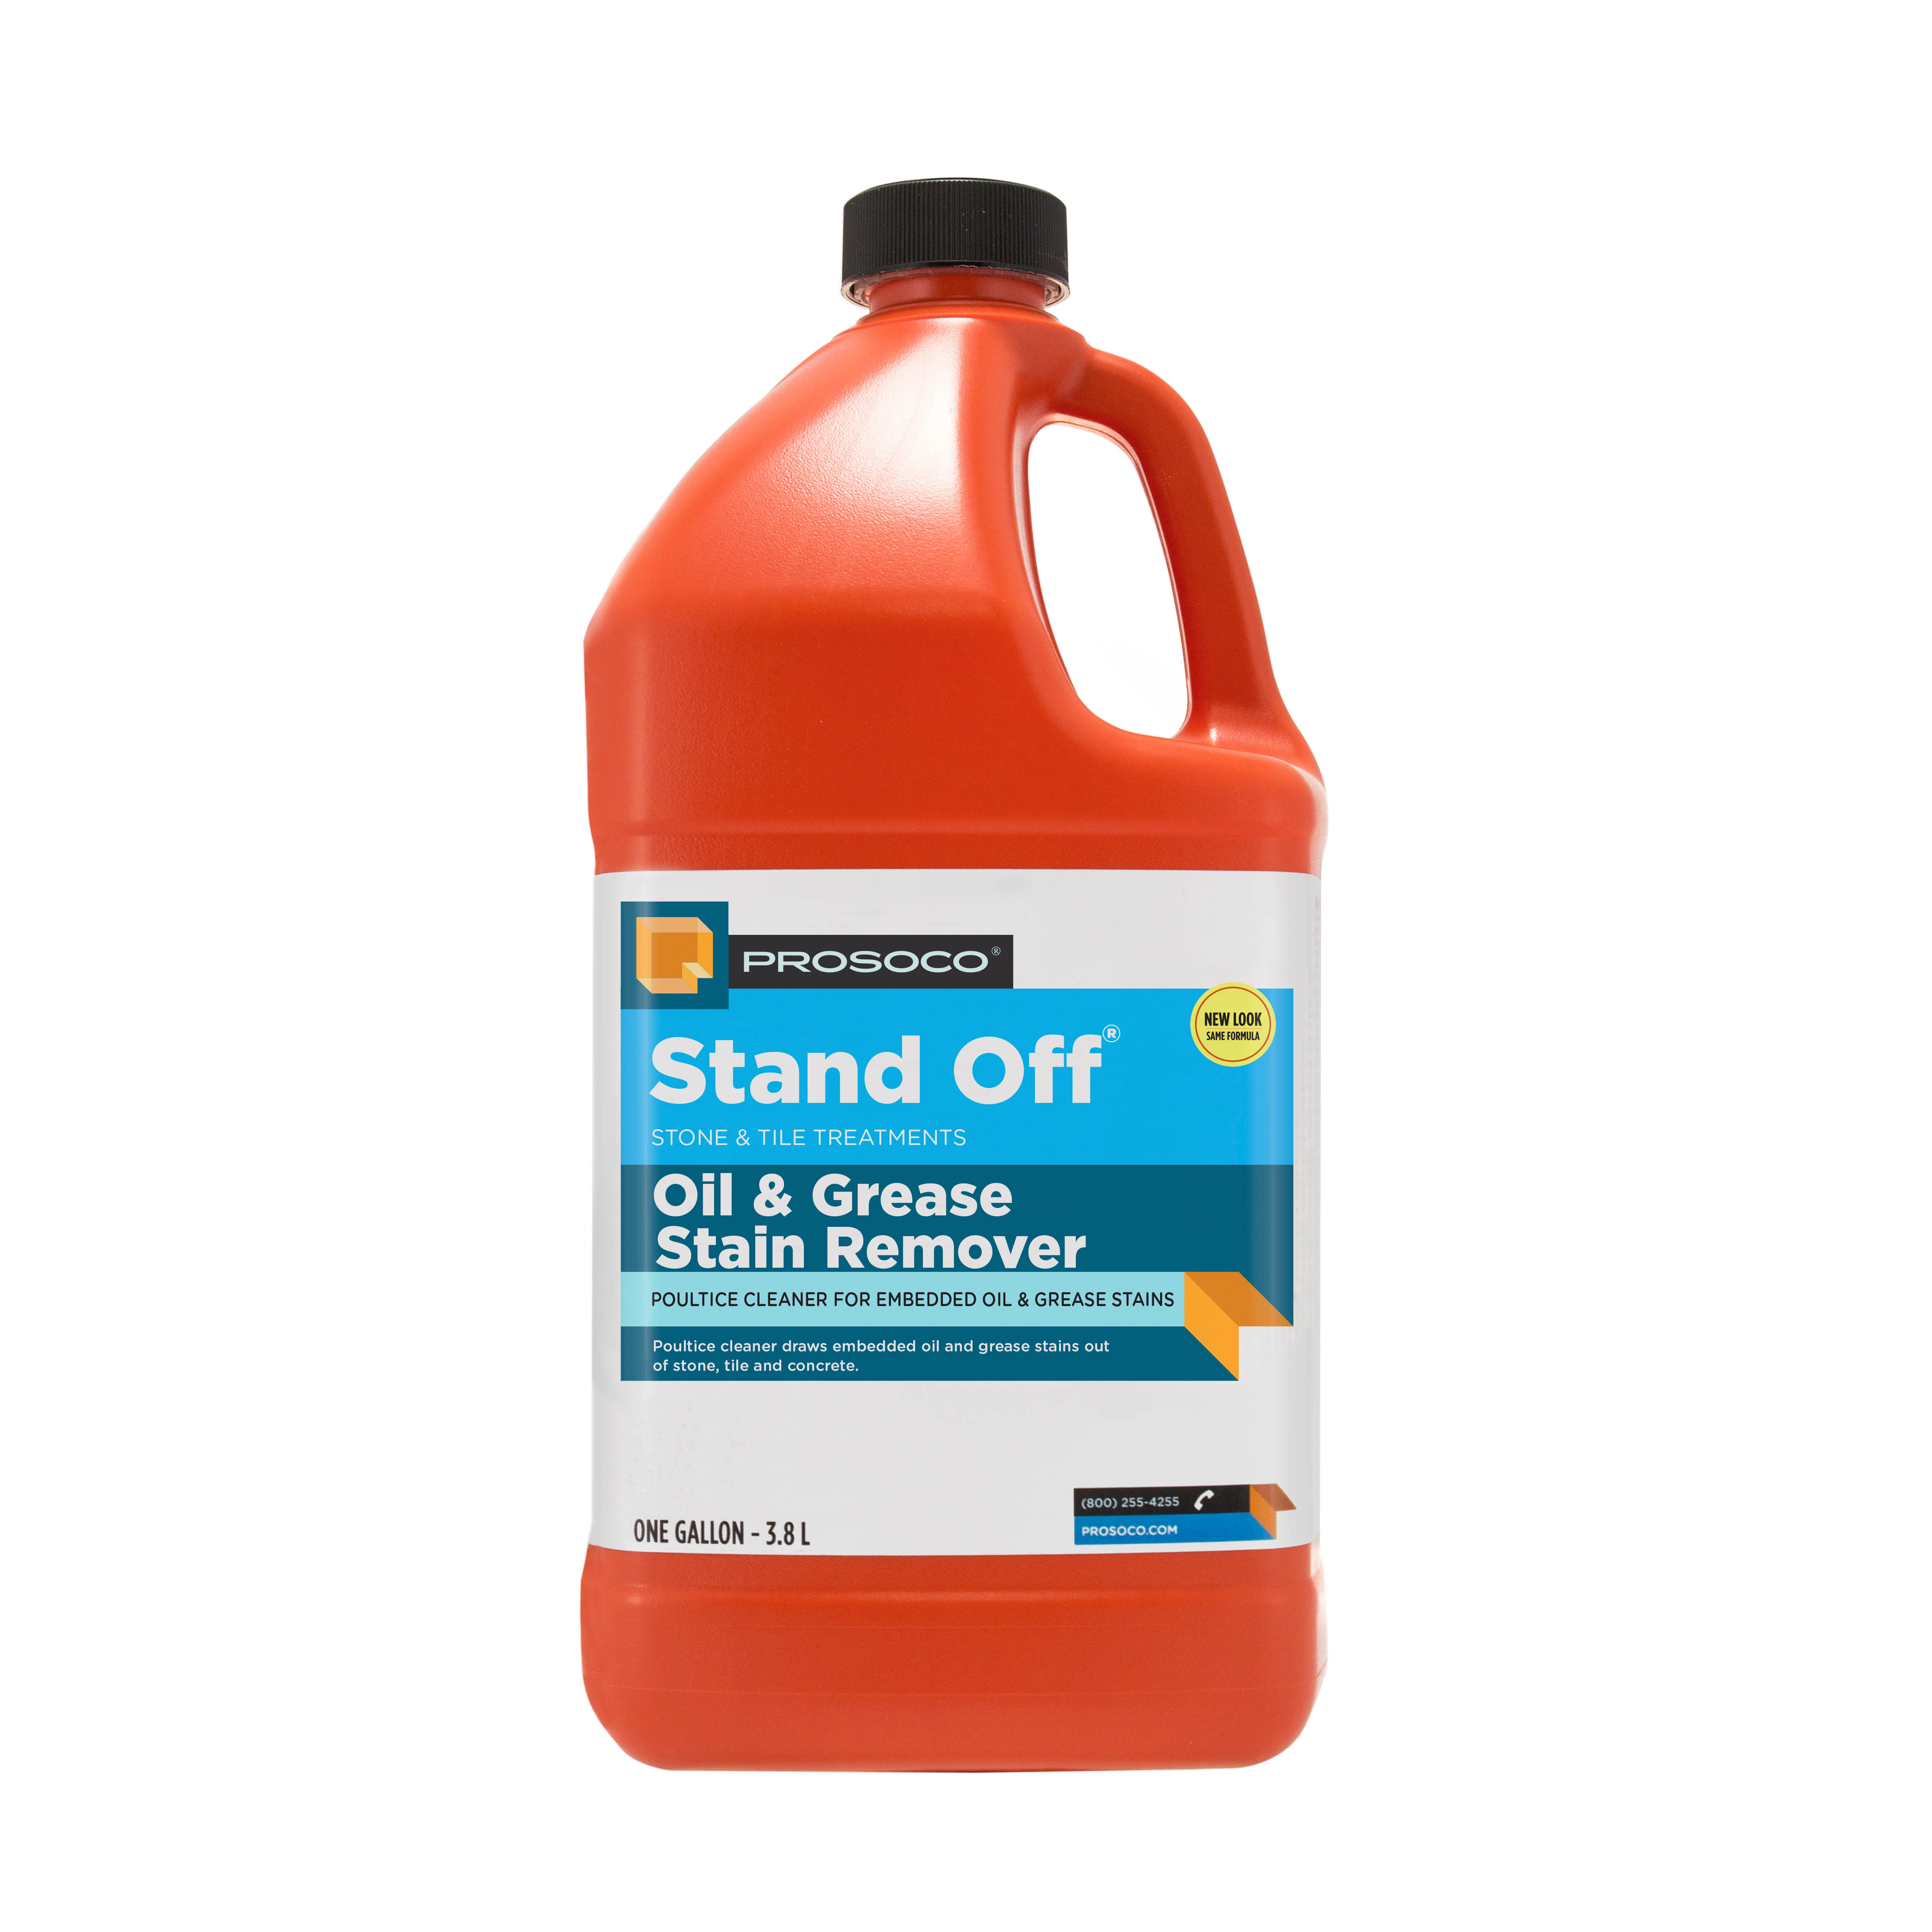 Prosoco Stand Off® Oil and Grease Stain Remover, 1-gal.